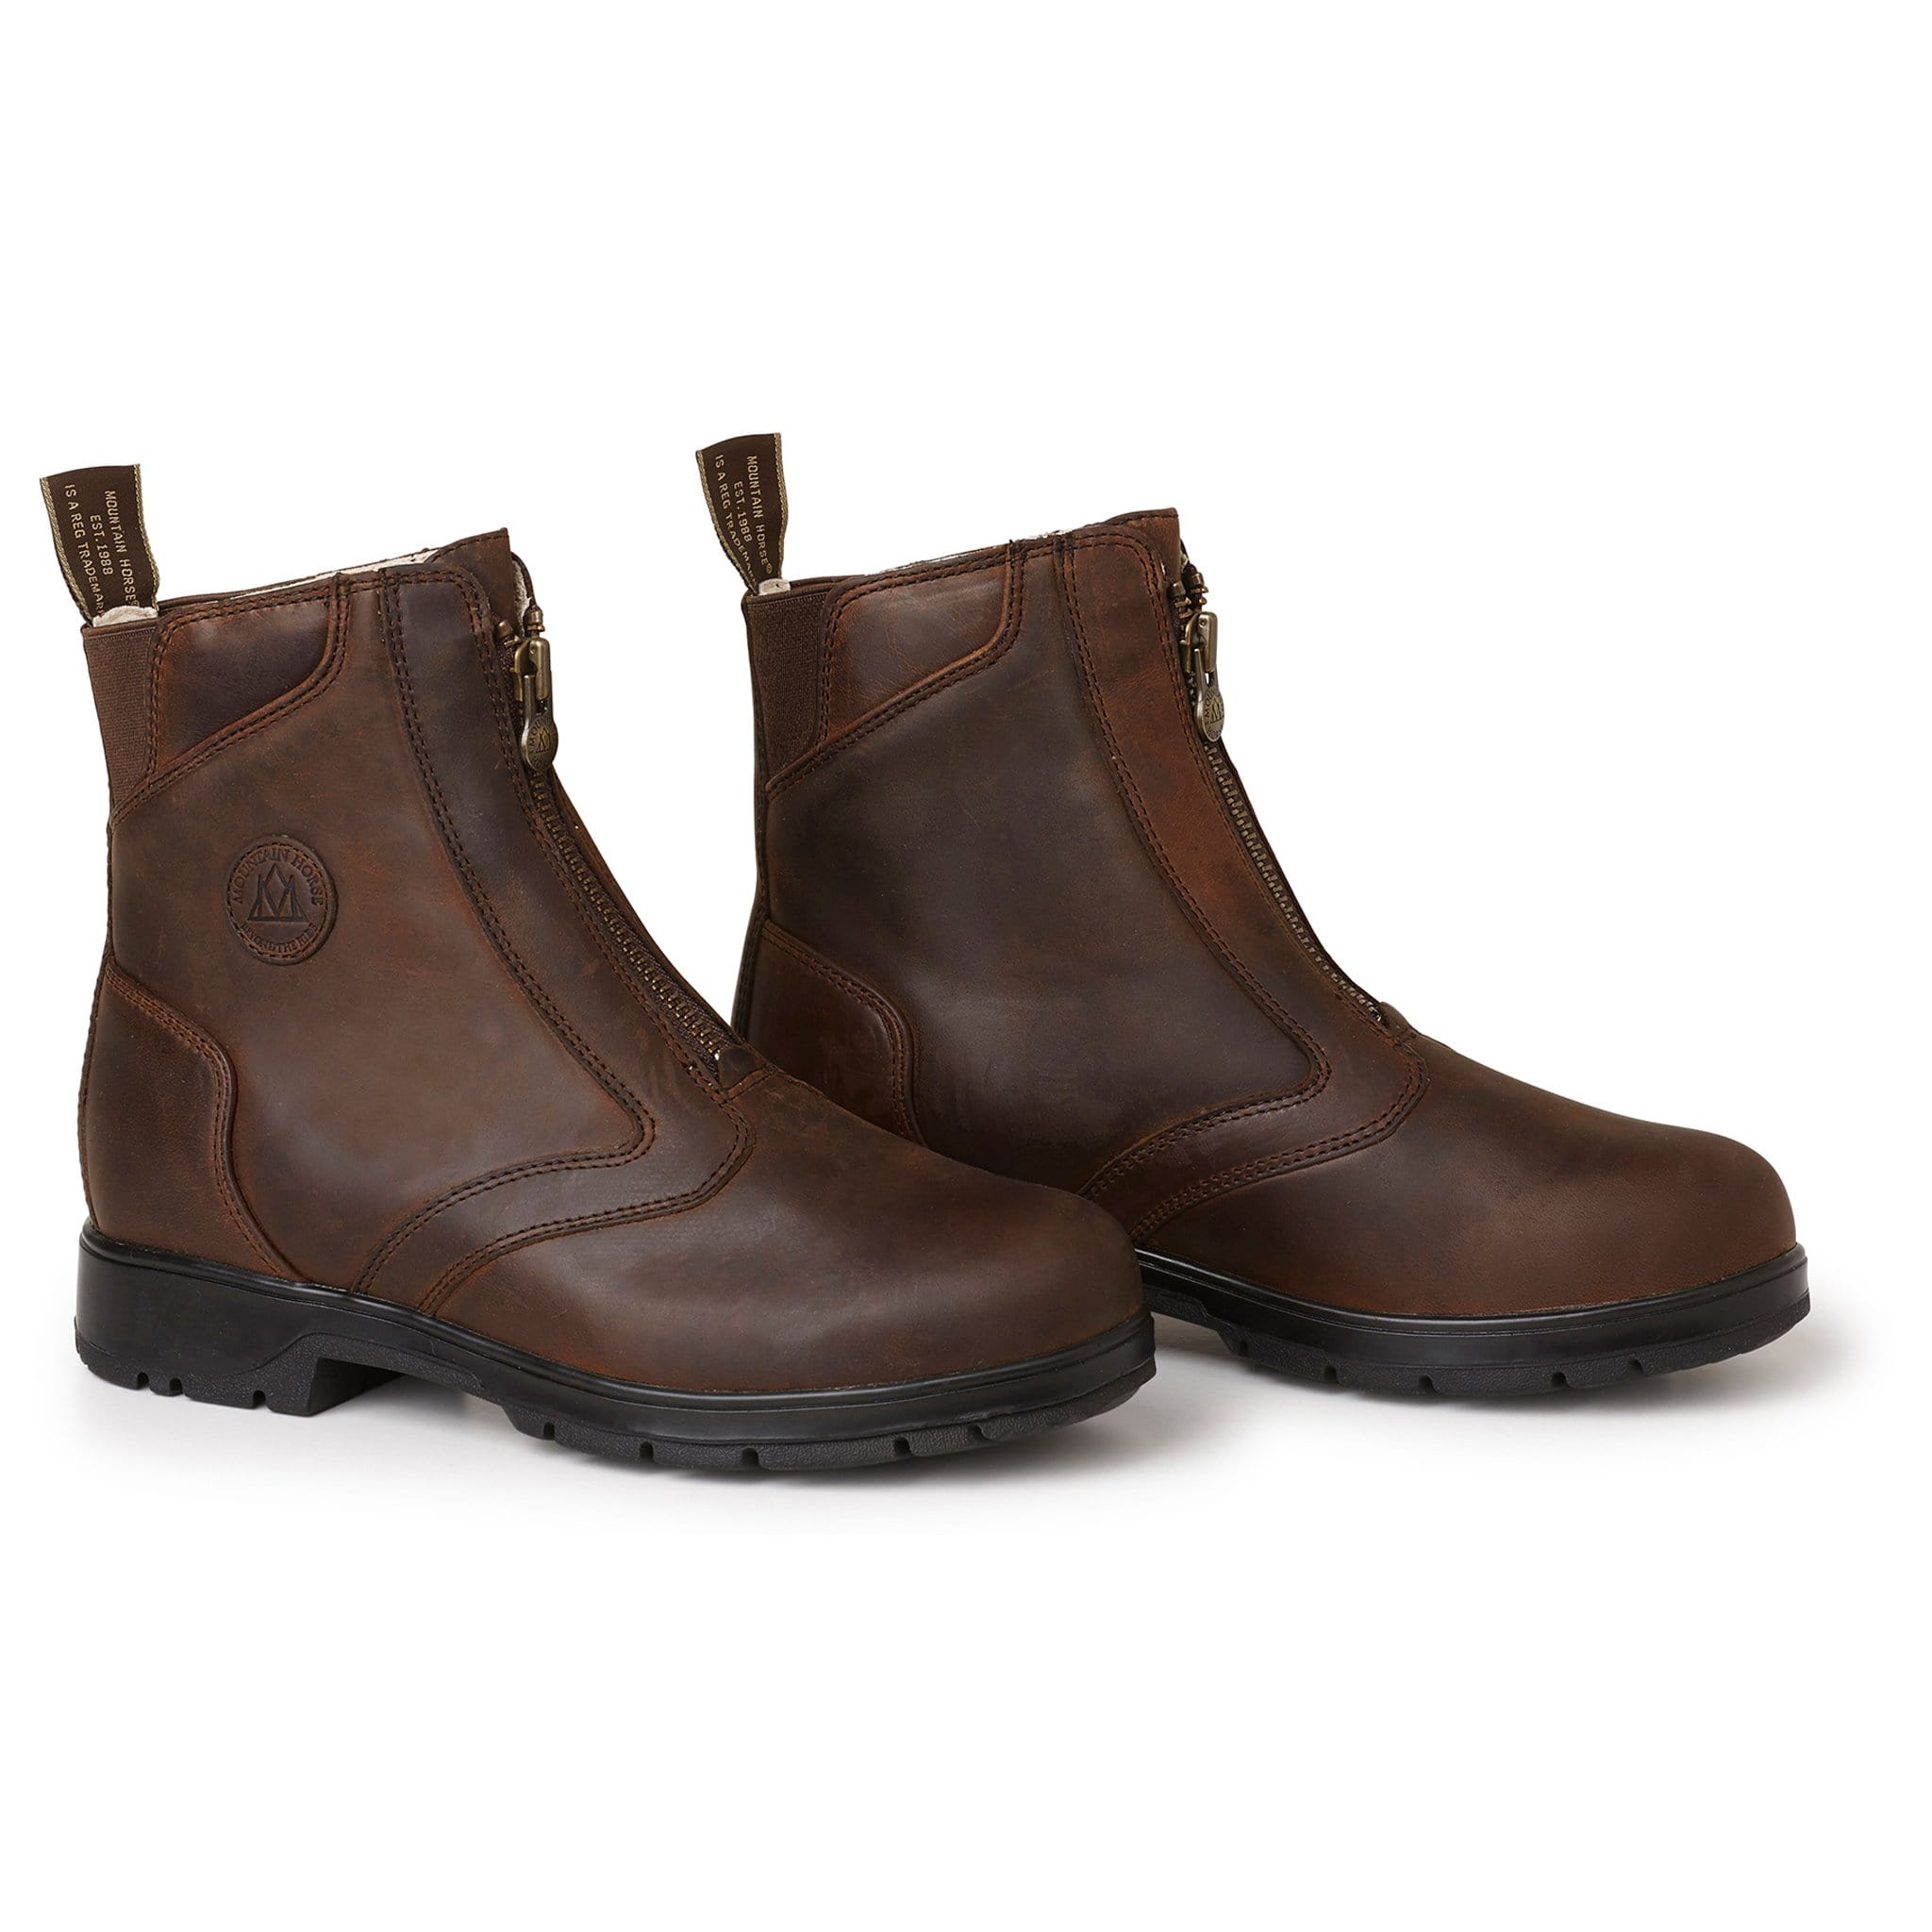 Mountain Horse Spring River Paddock Boot Brown 01054